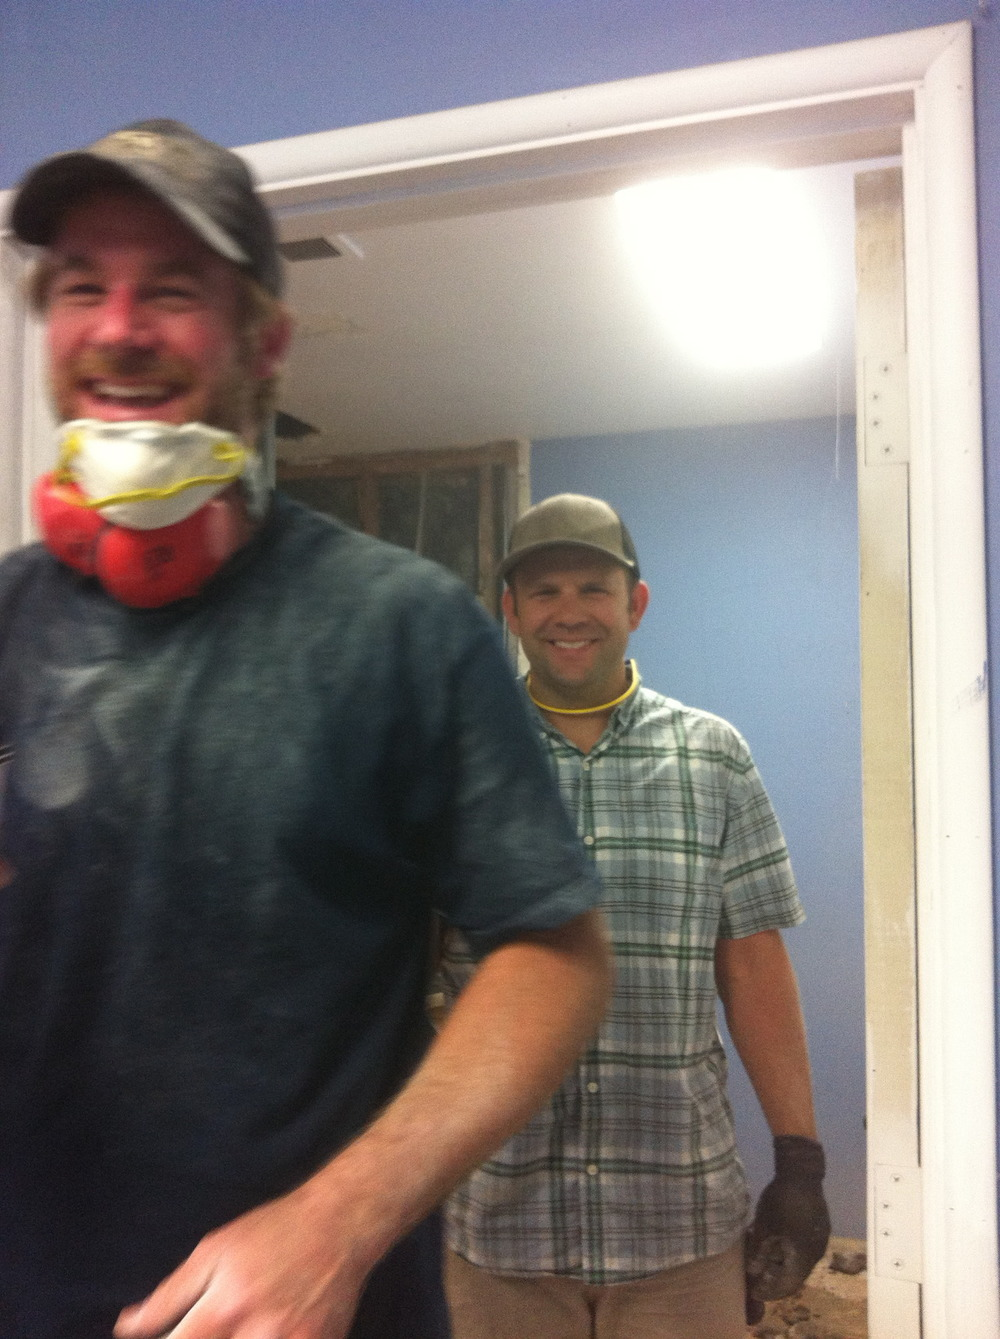 Who knew giving back to the community could be such fun! Thanks to Jeff Mumm and our neighbor Adam the winemaker at PALI for giving up their day to help build the Youth Interactive kitchen!